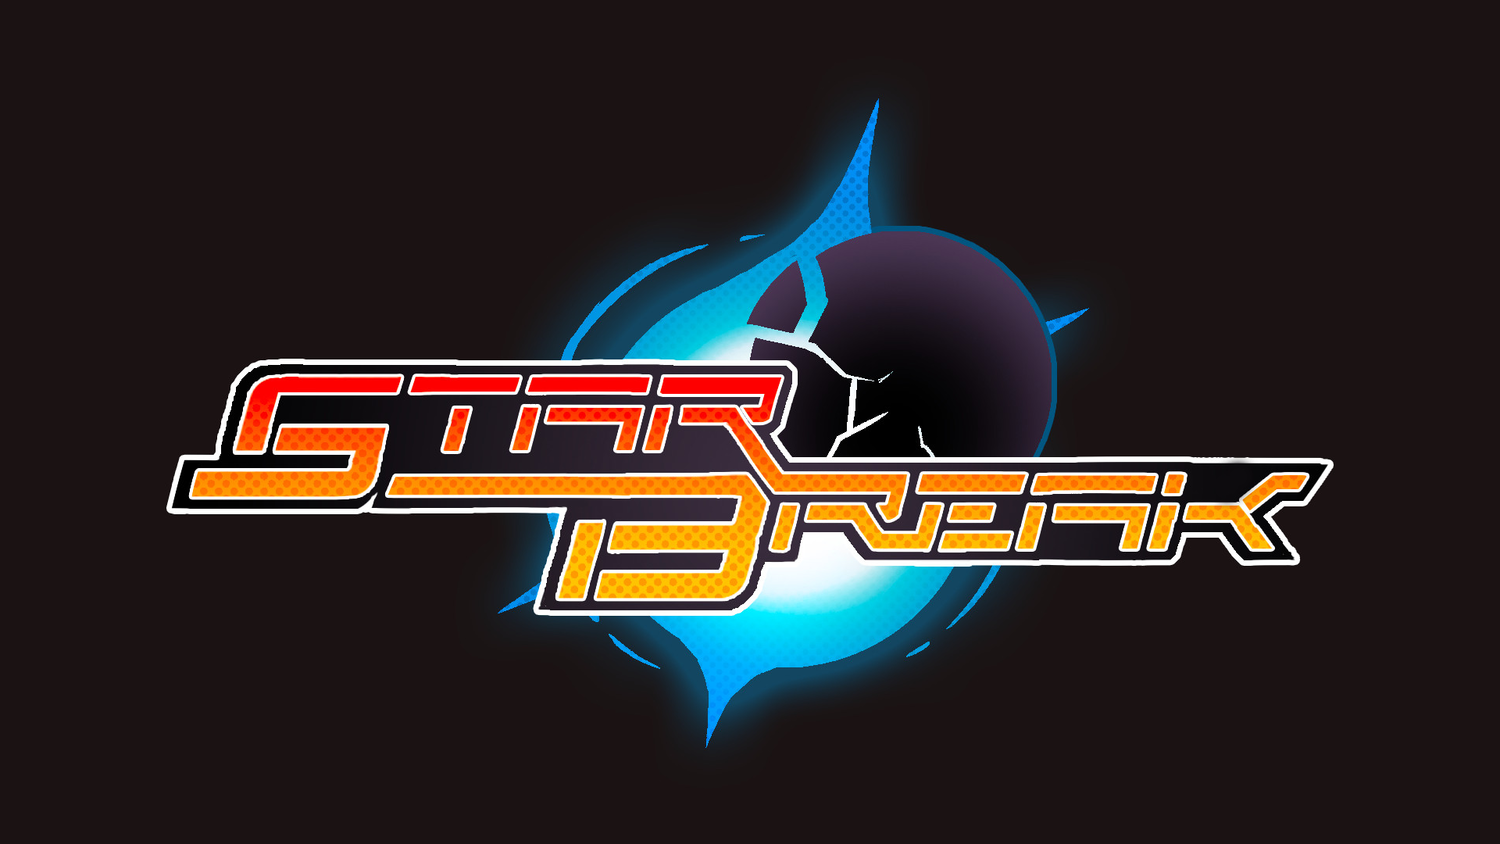 The Little Studio Of Crunchy Games Just Kicked Off A Steam Greenlight Campaign For Their Upcoming Metroidvania Style MMO StarBreak